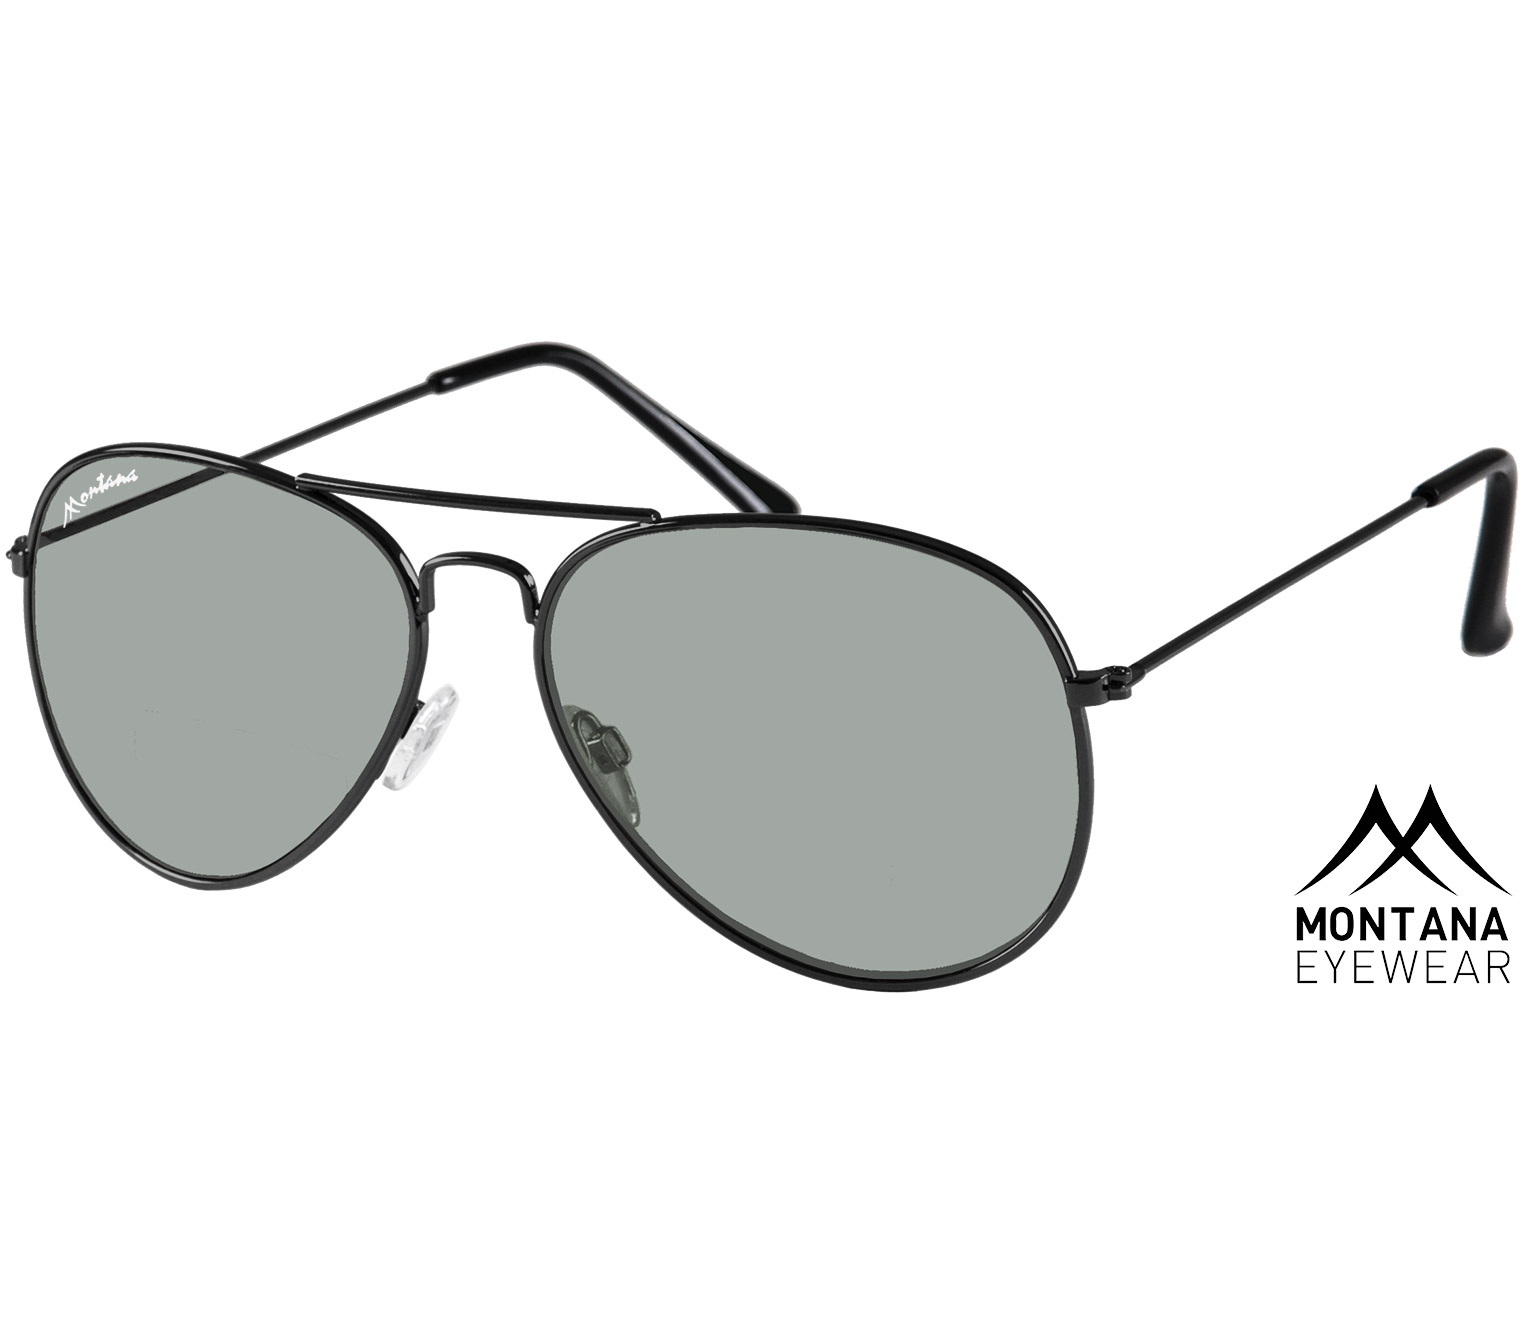 Main Image (Angle) - Fiji (Black) Aviator Sunglasses